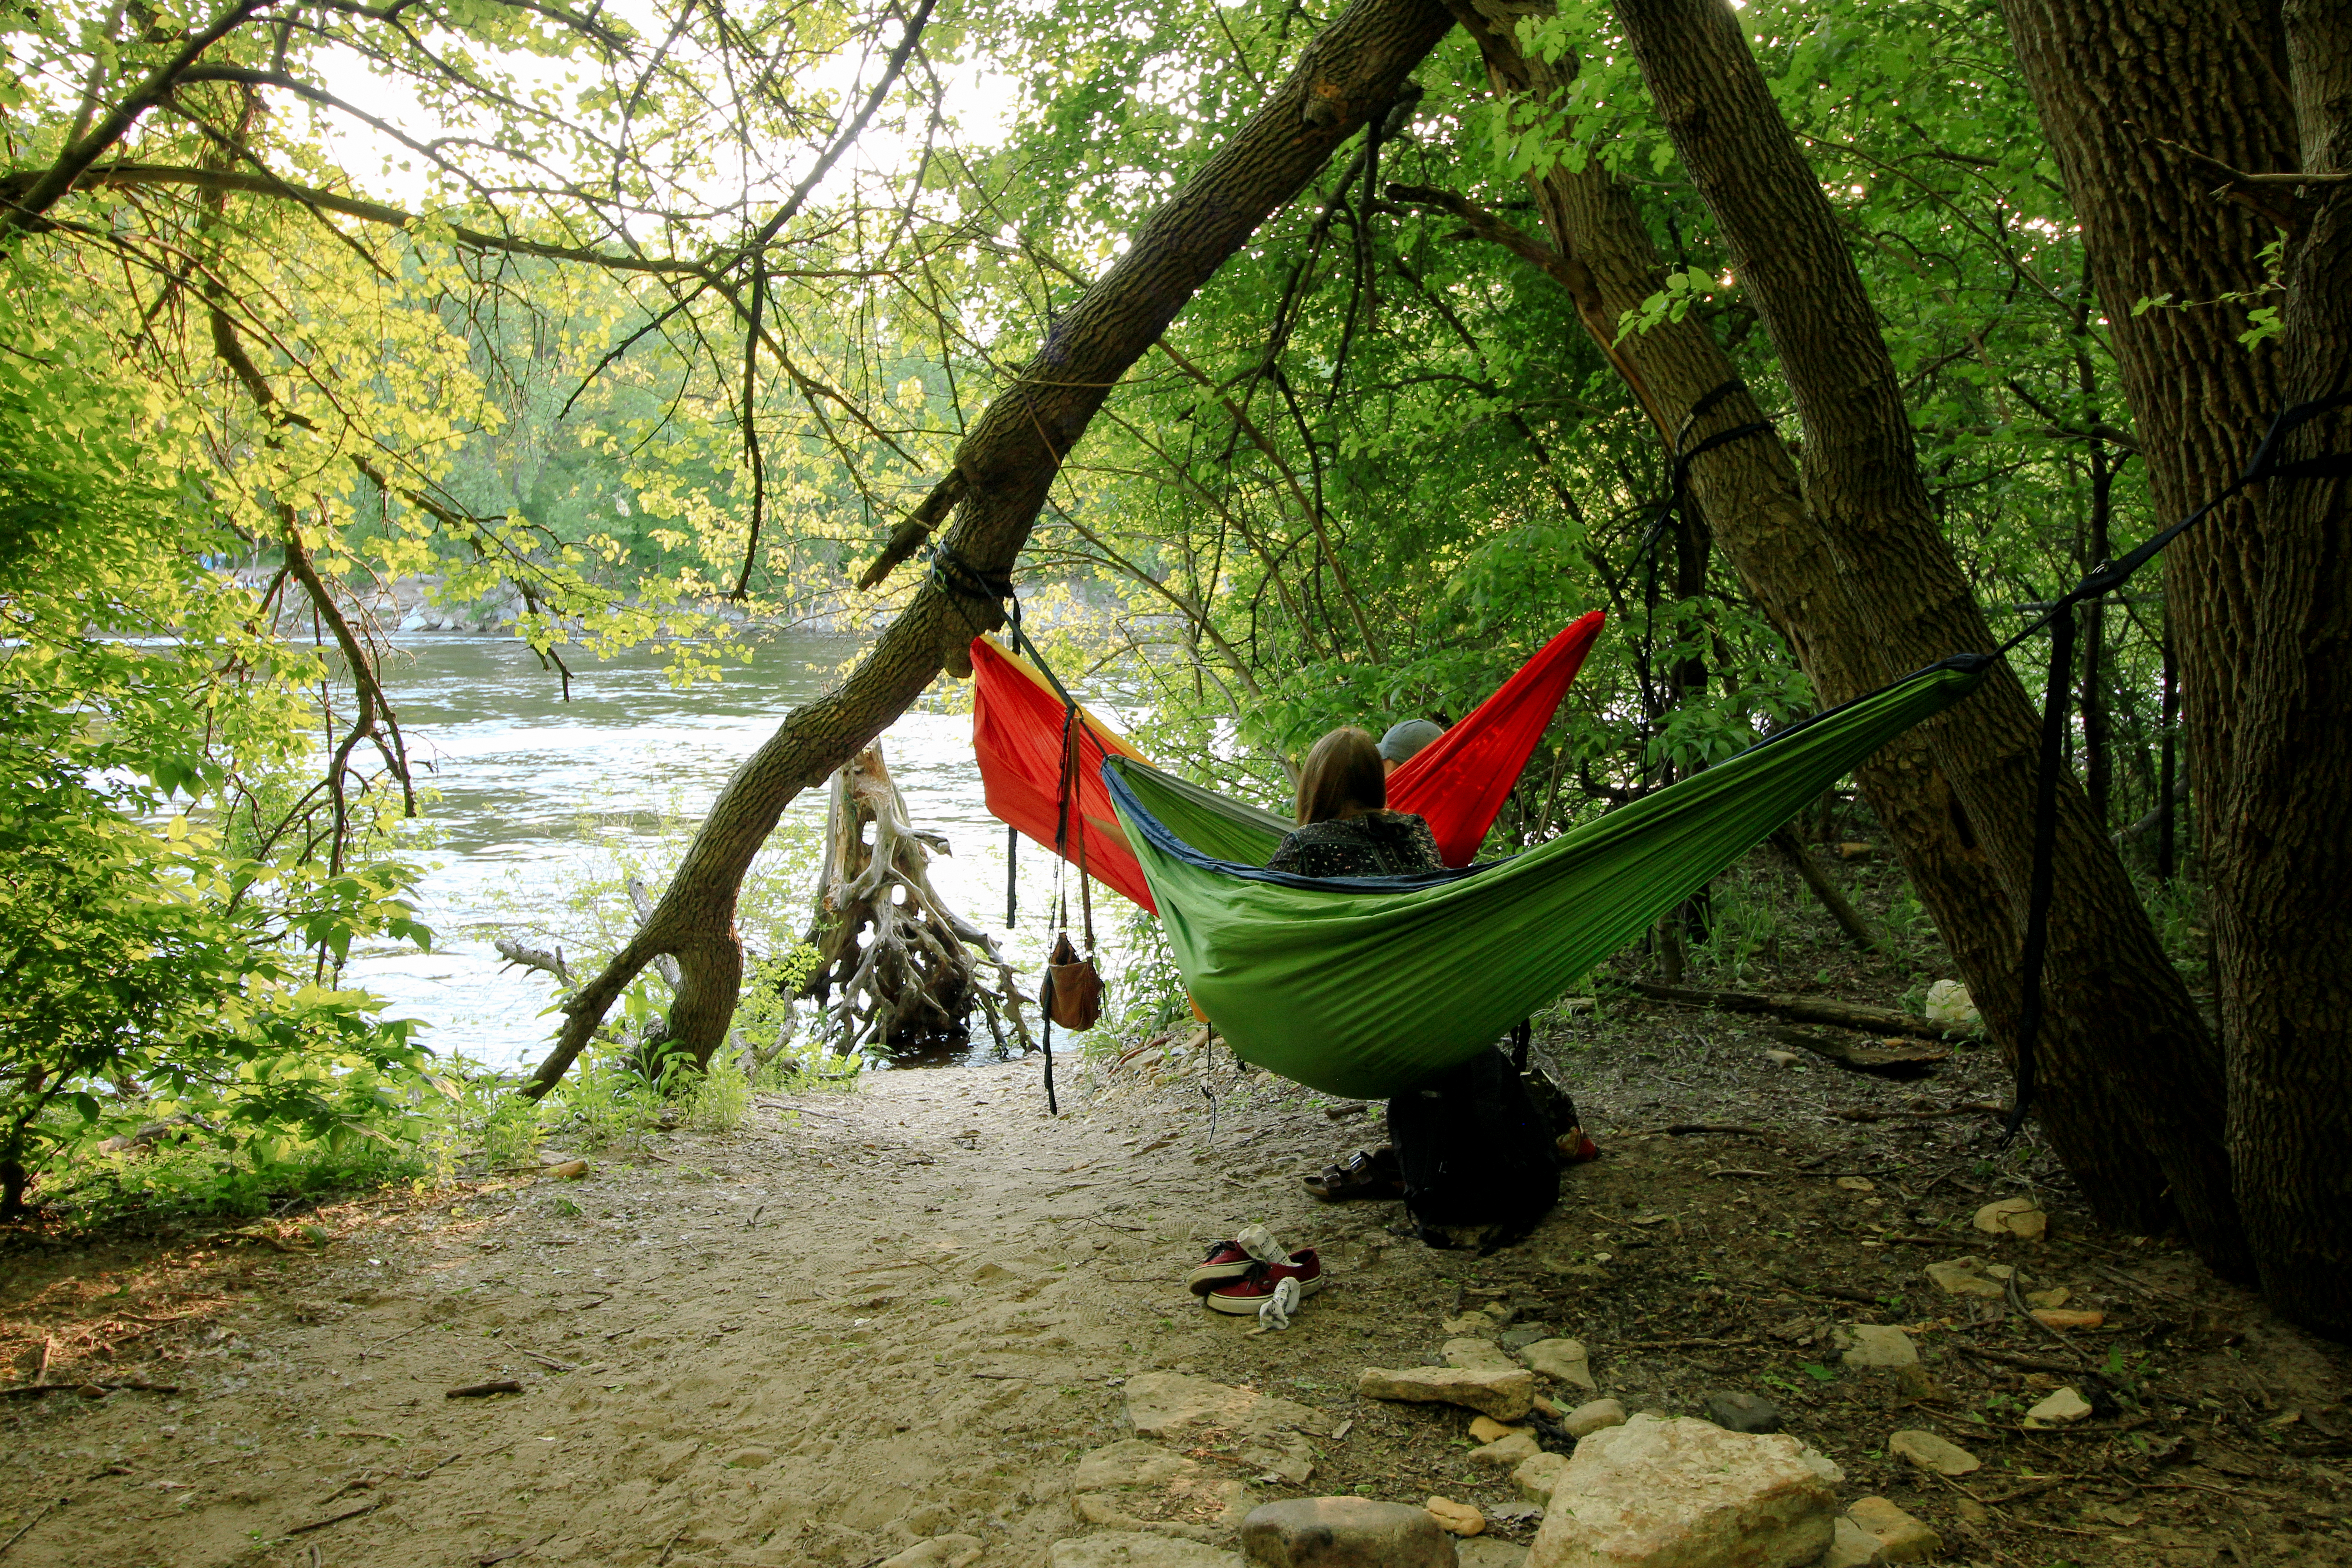 Hidden Falls Regional Park. Two people sit in individual hammocks in a shady area near a river. Photographer Erin D. Carter.